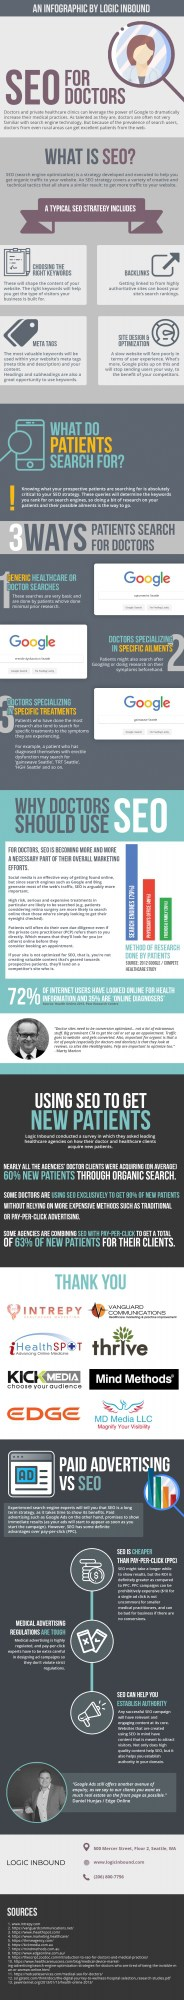 seo for doctors infographic 1 - SEO for Doctors - Infographic